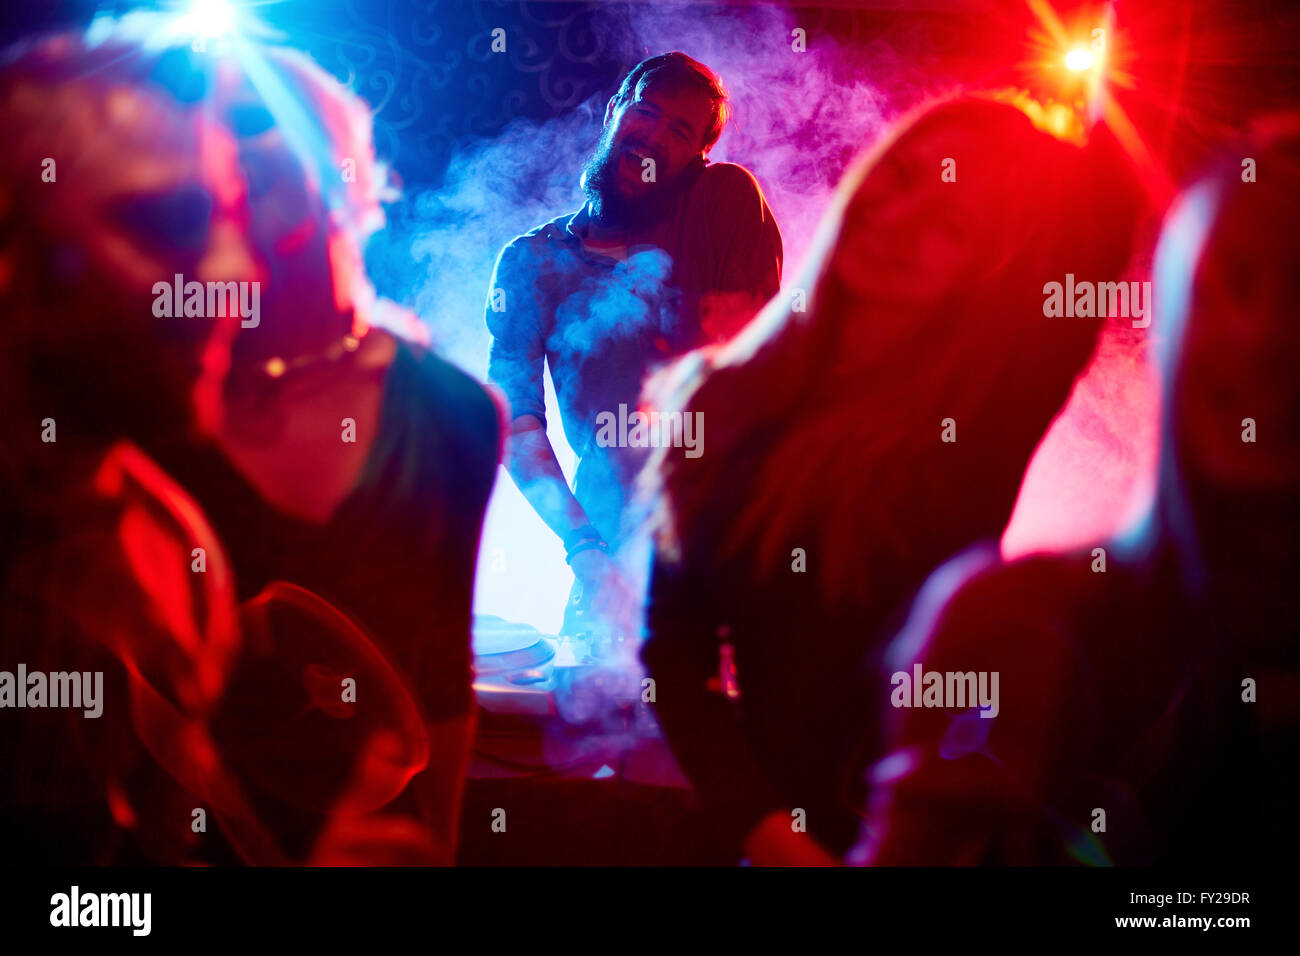 Cool disco Photo Stock